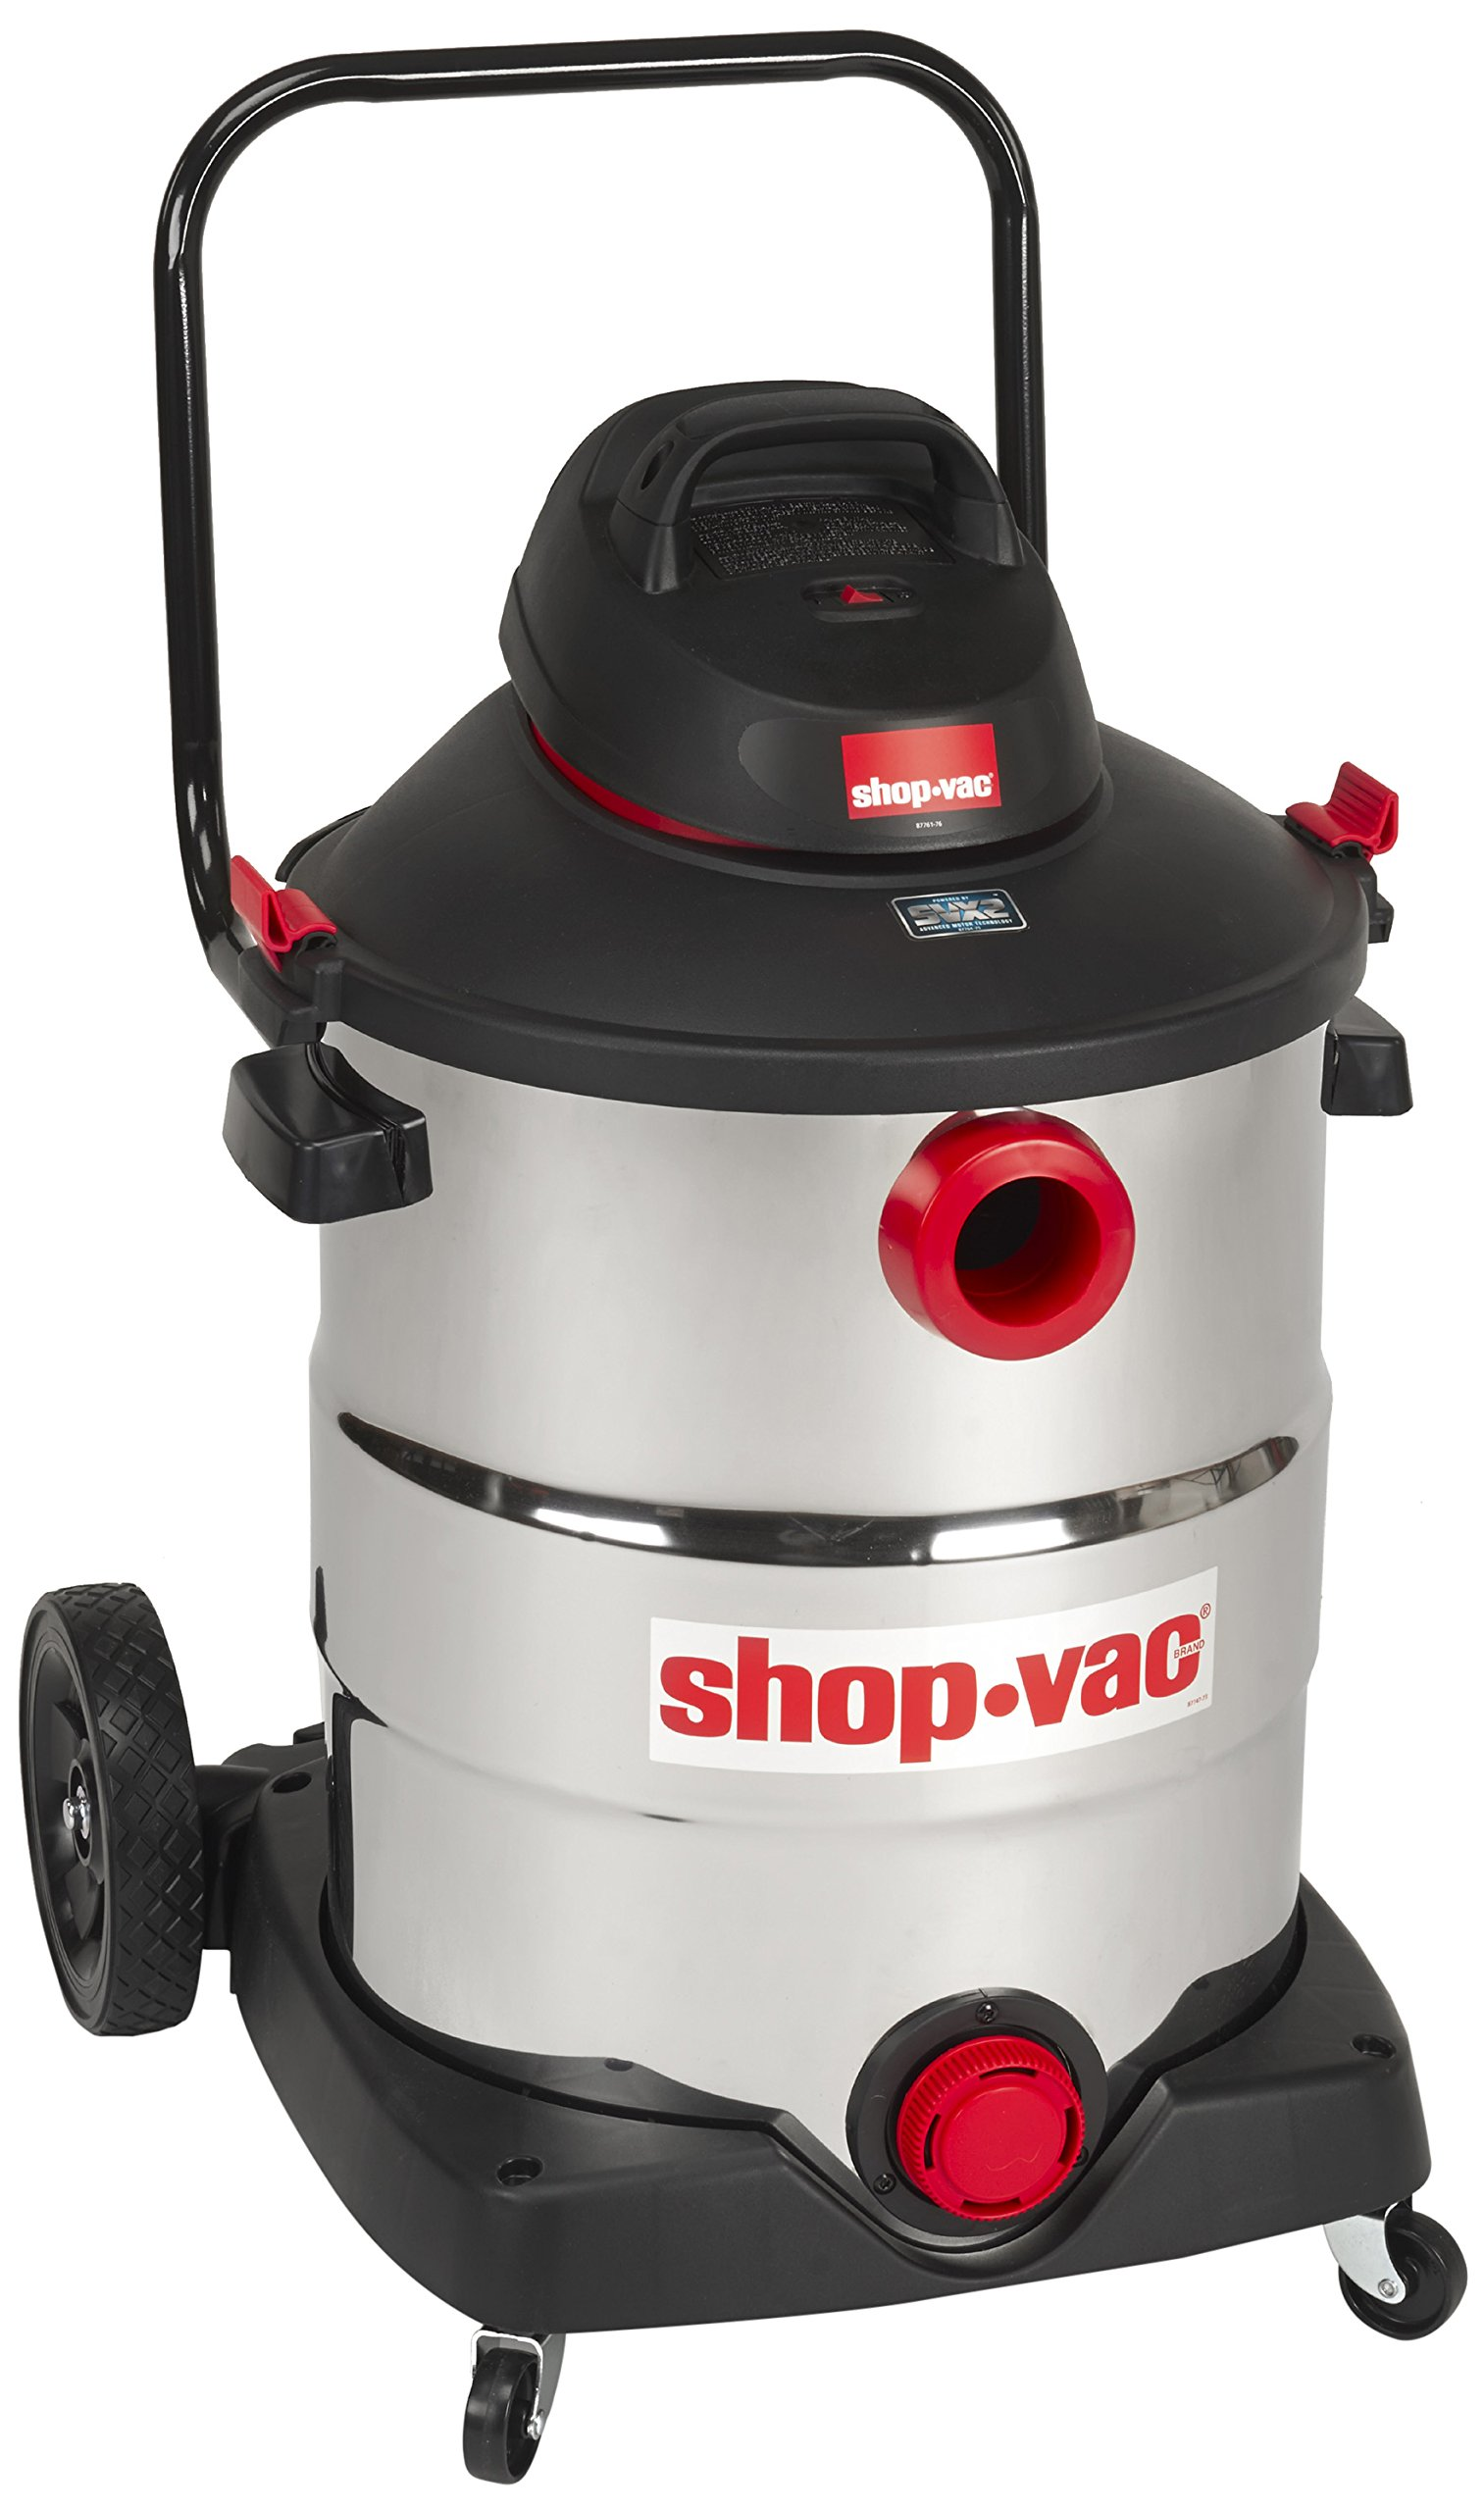 Shop-Vac 5989700 16 gallon 6.5 Peak HP Stainless with Handle Wet Dry Vacuum, Black